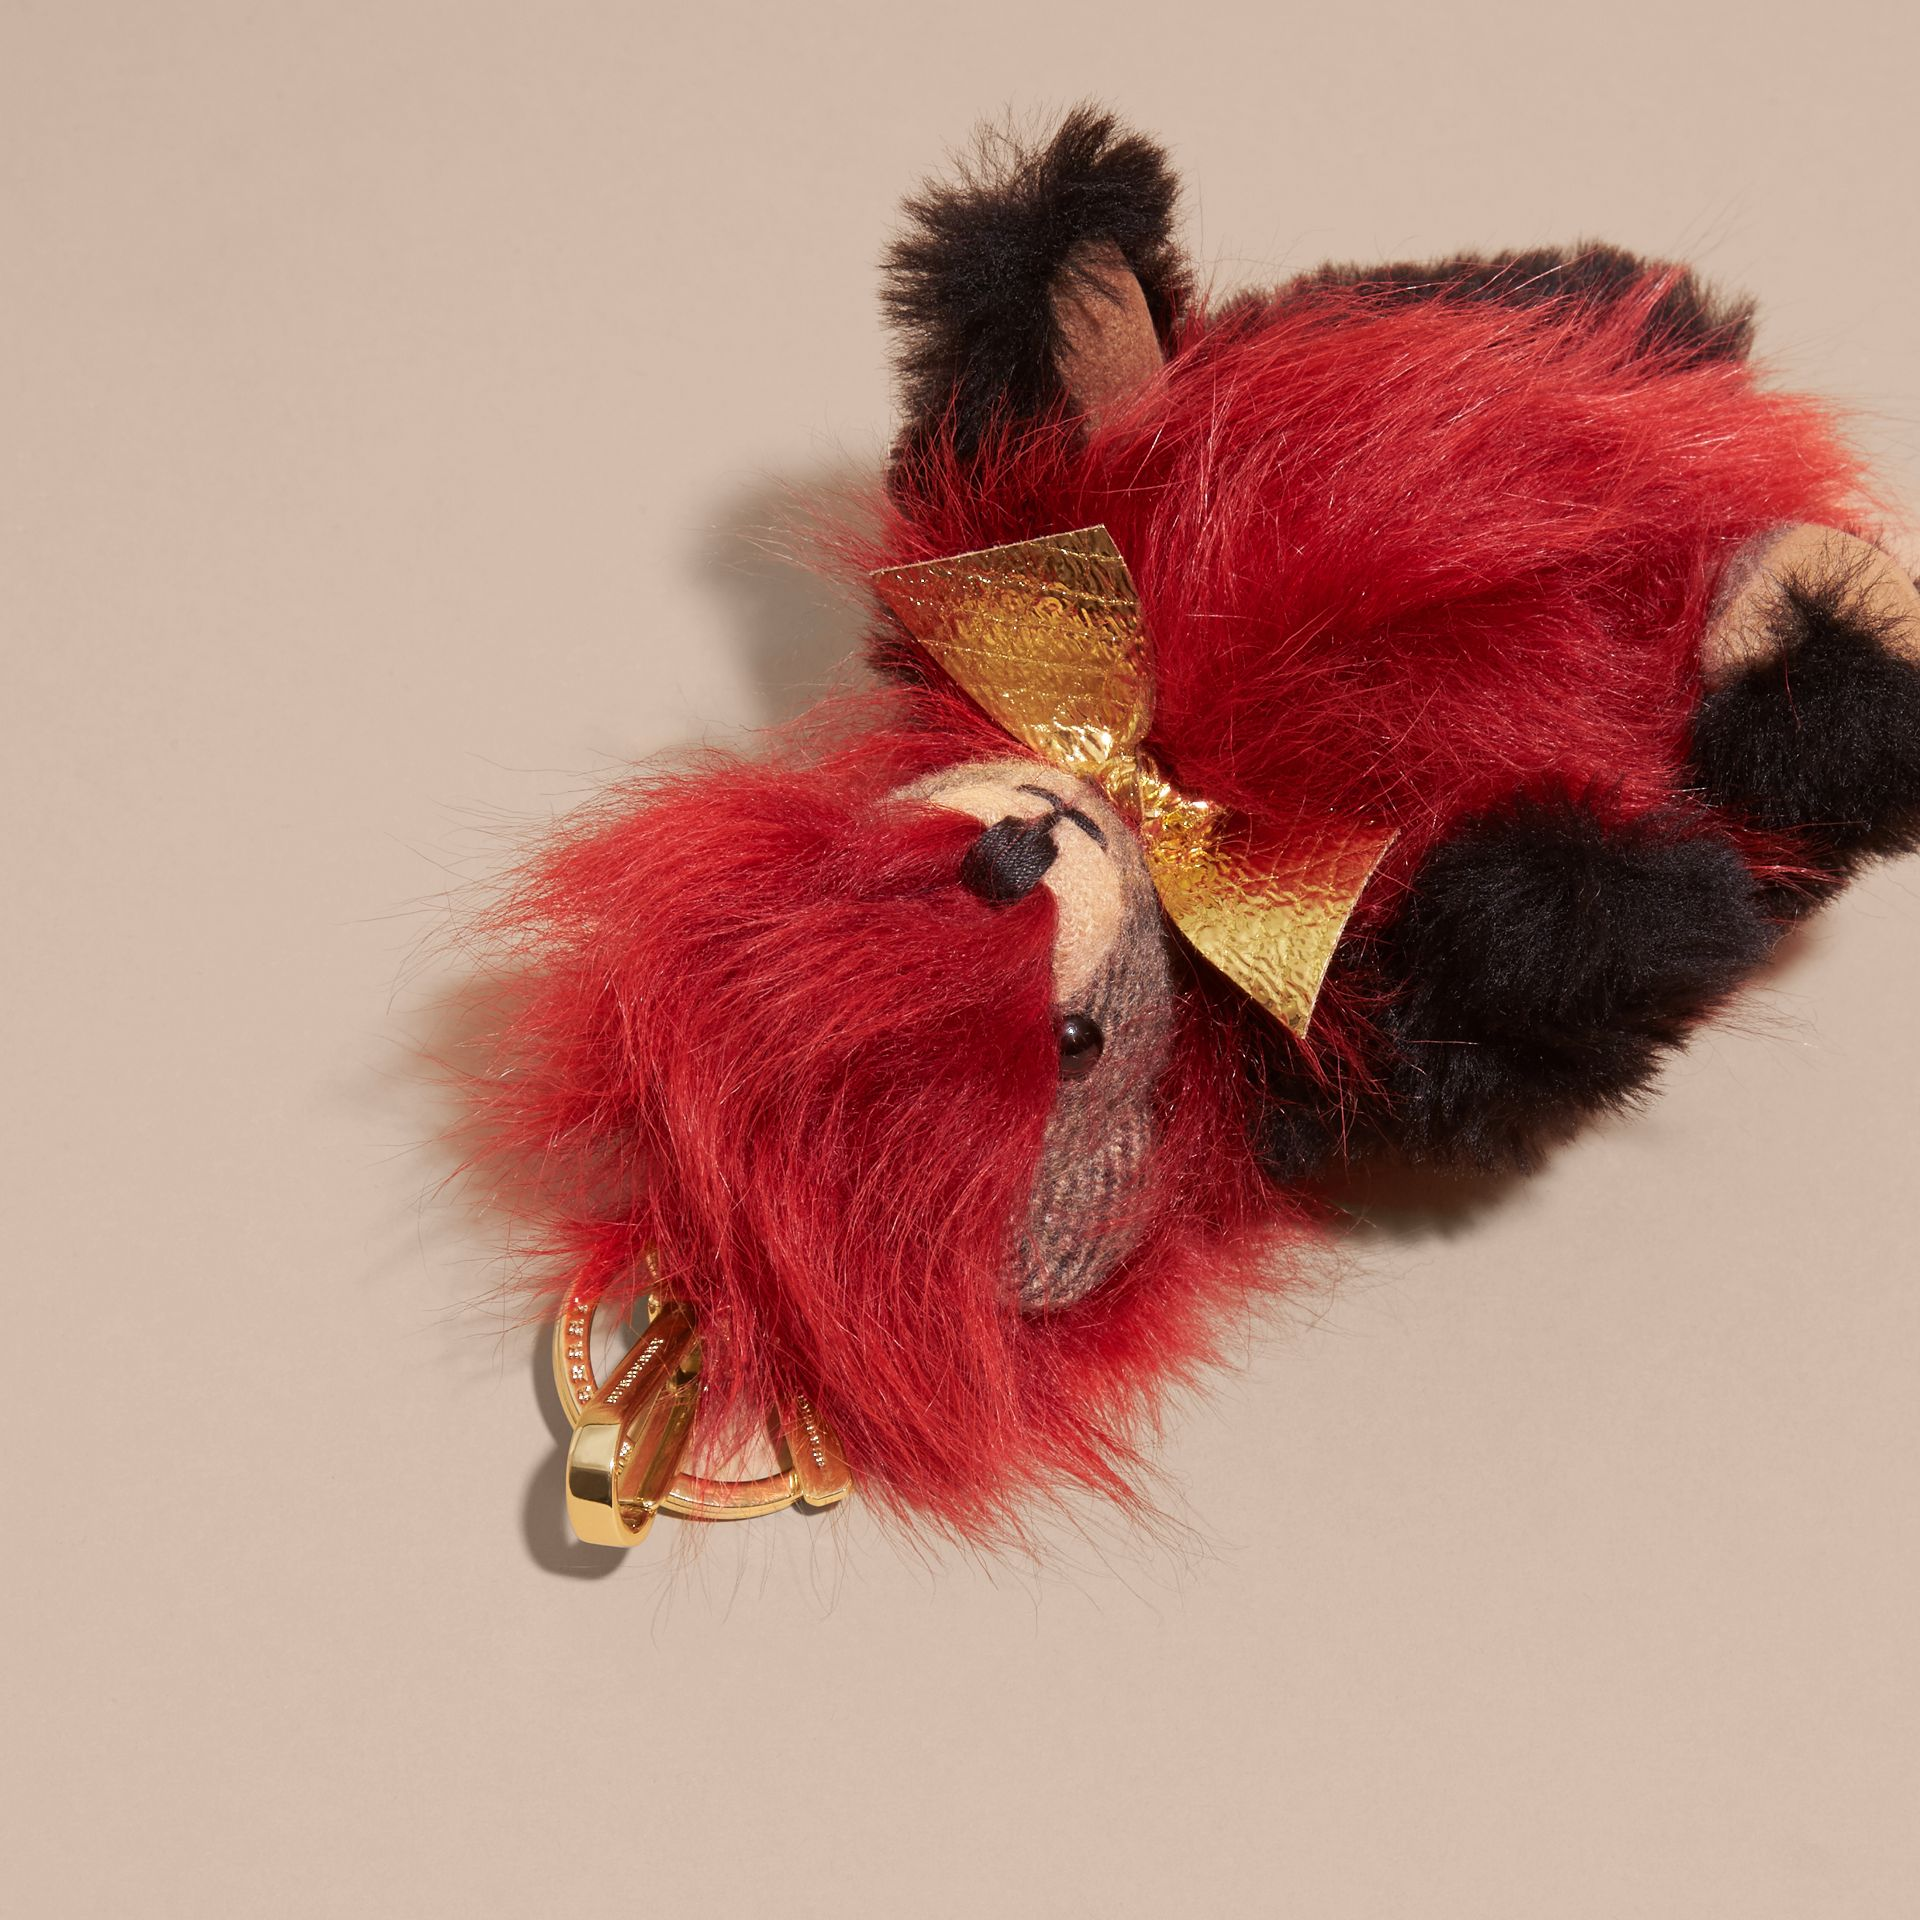 Thomas Bear Pom-Pom Charm in Check Cashmere in Parade Red | Burberry Singapore - gallery image 6